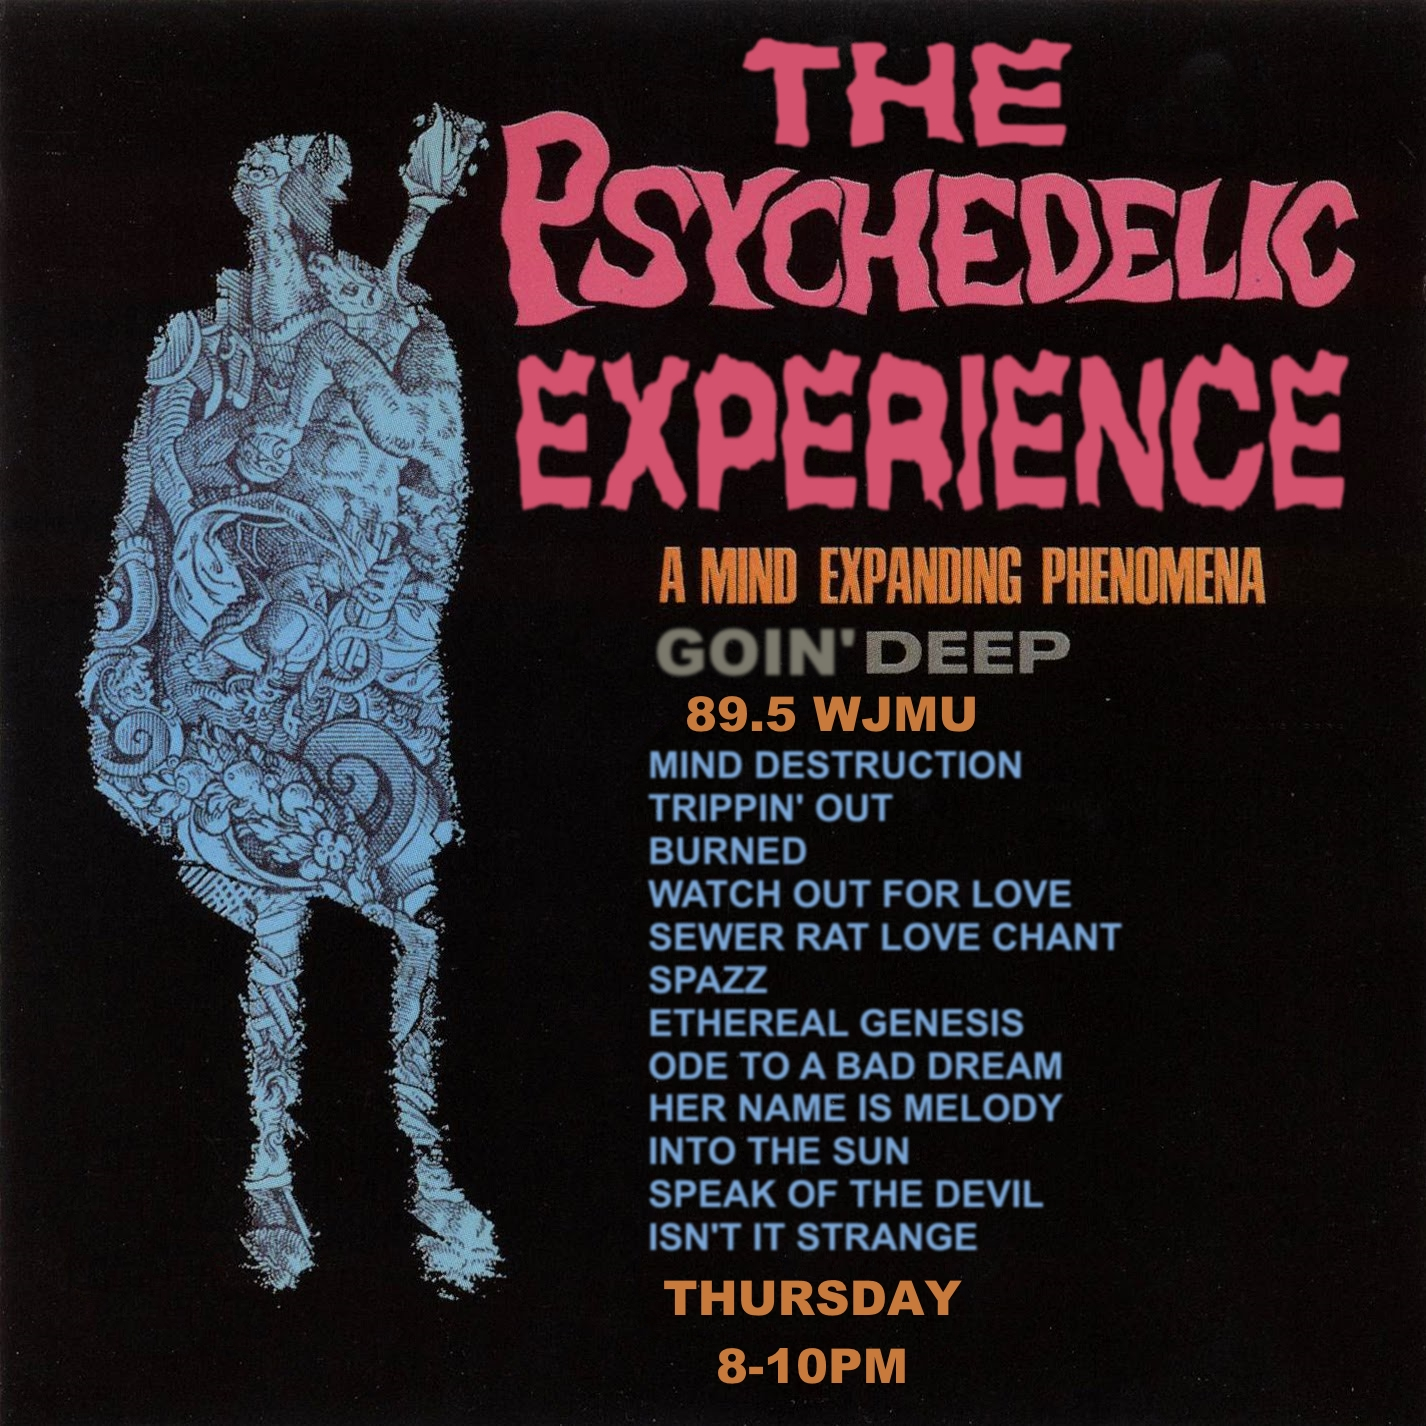 The Psychedelic Experience – April 21, 2016 – Goin' Deep